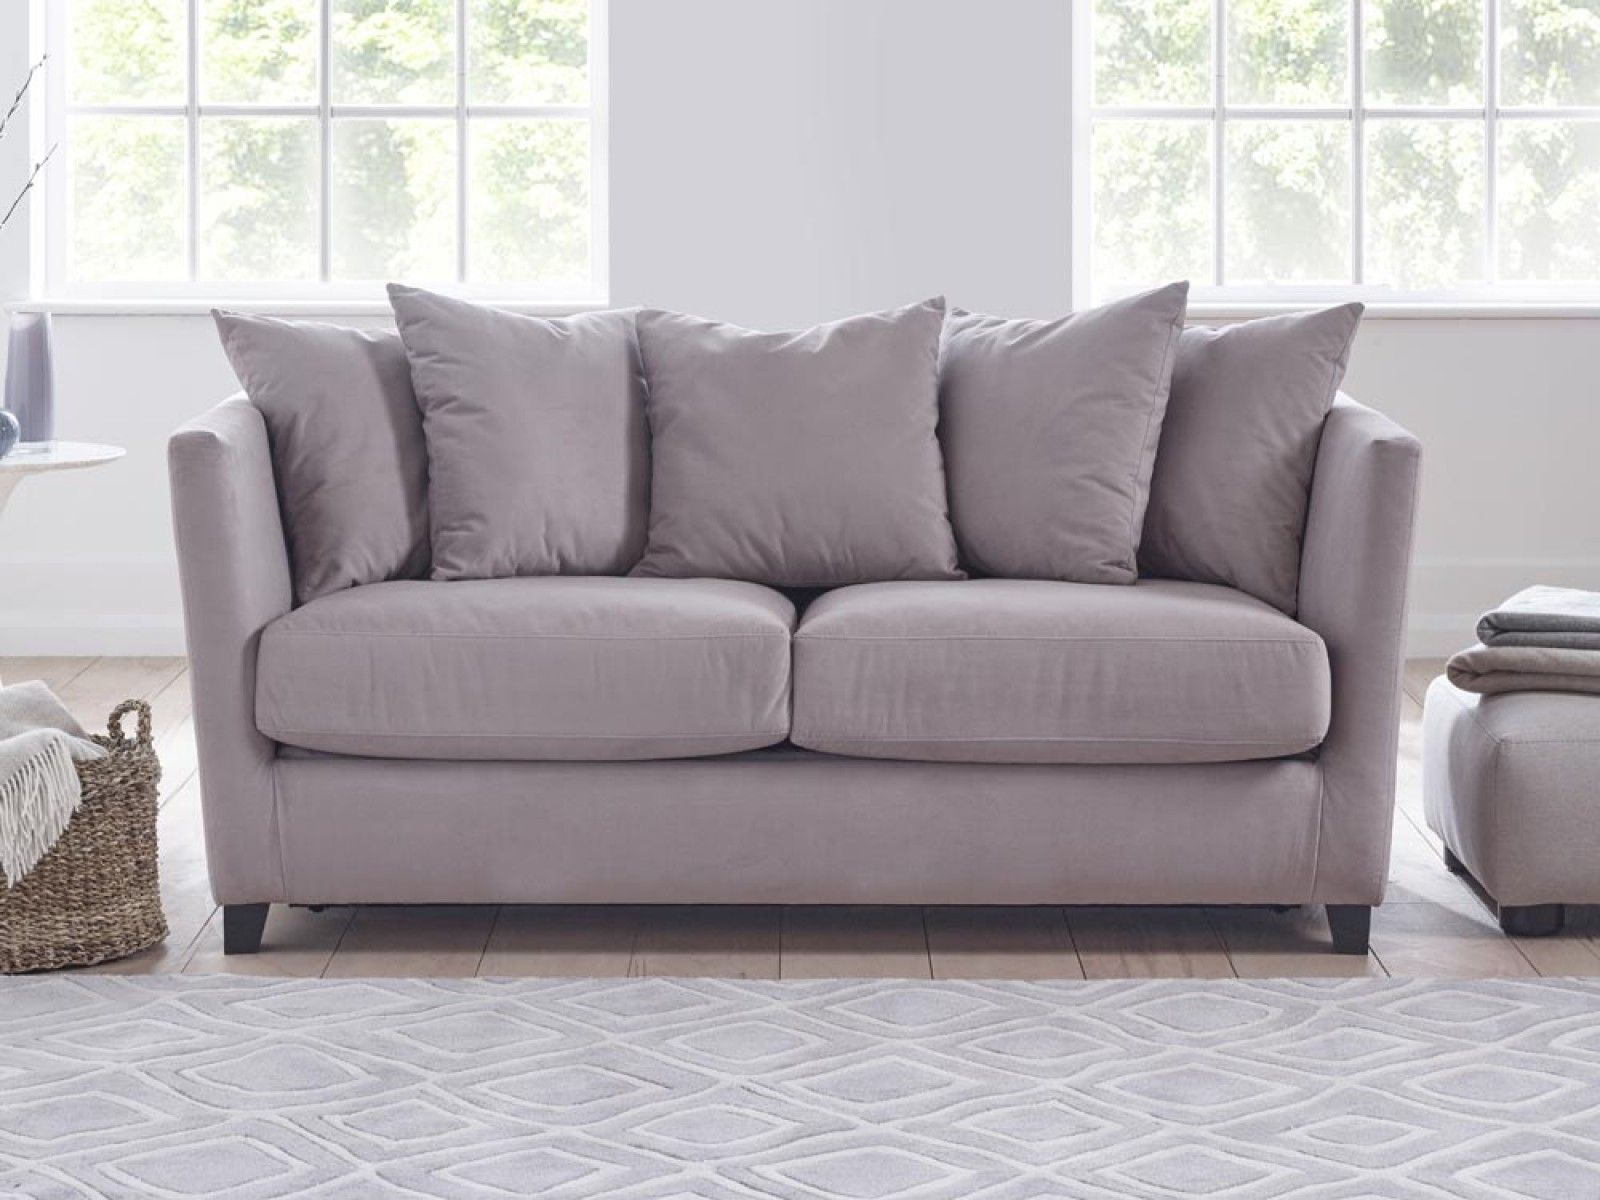 Esme Sofa Bed Contemporary sofa by day, that transforms in